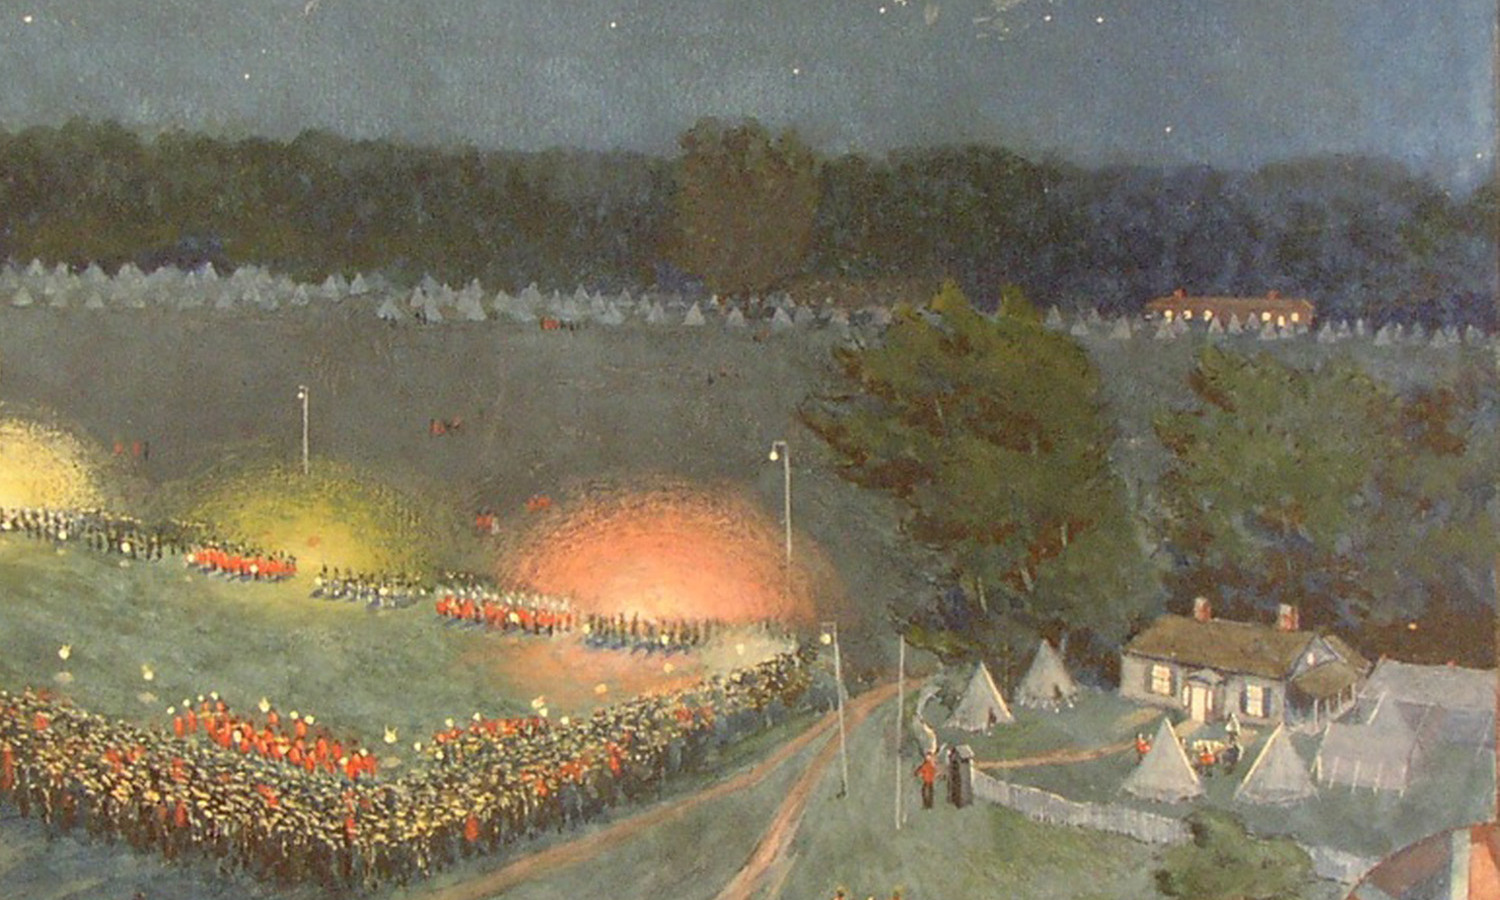 This E.Wyly Grier Painting Depicts Camp Niagara in 1899 in a Romantic Edwardian Ideal (i.e. Pre-WWI), Junior Commissariat Officer's Quarters on the Right - Courtesy of Niagara Historical Society